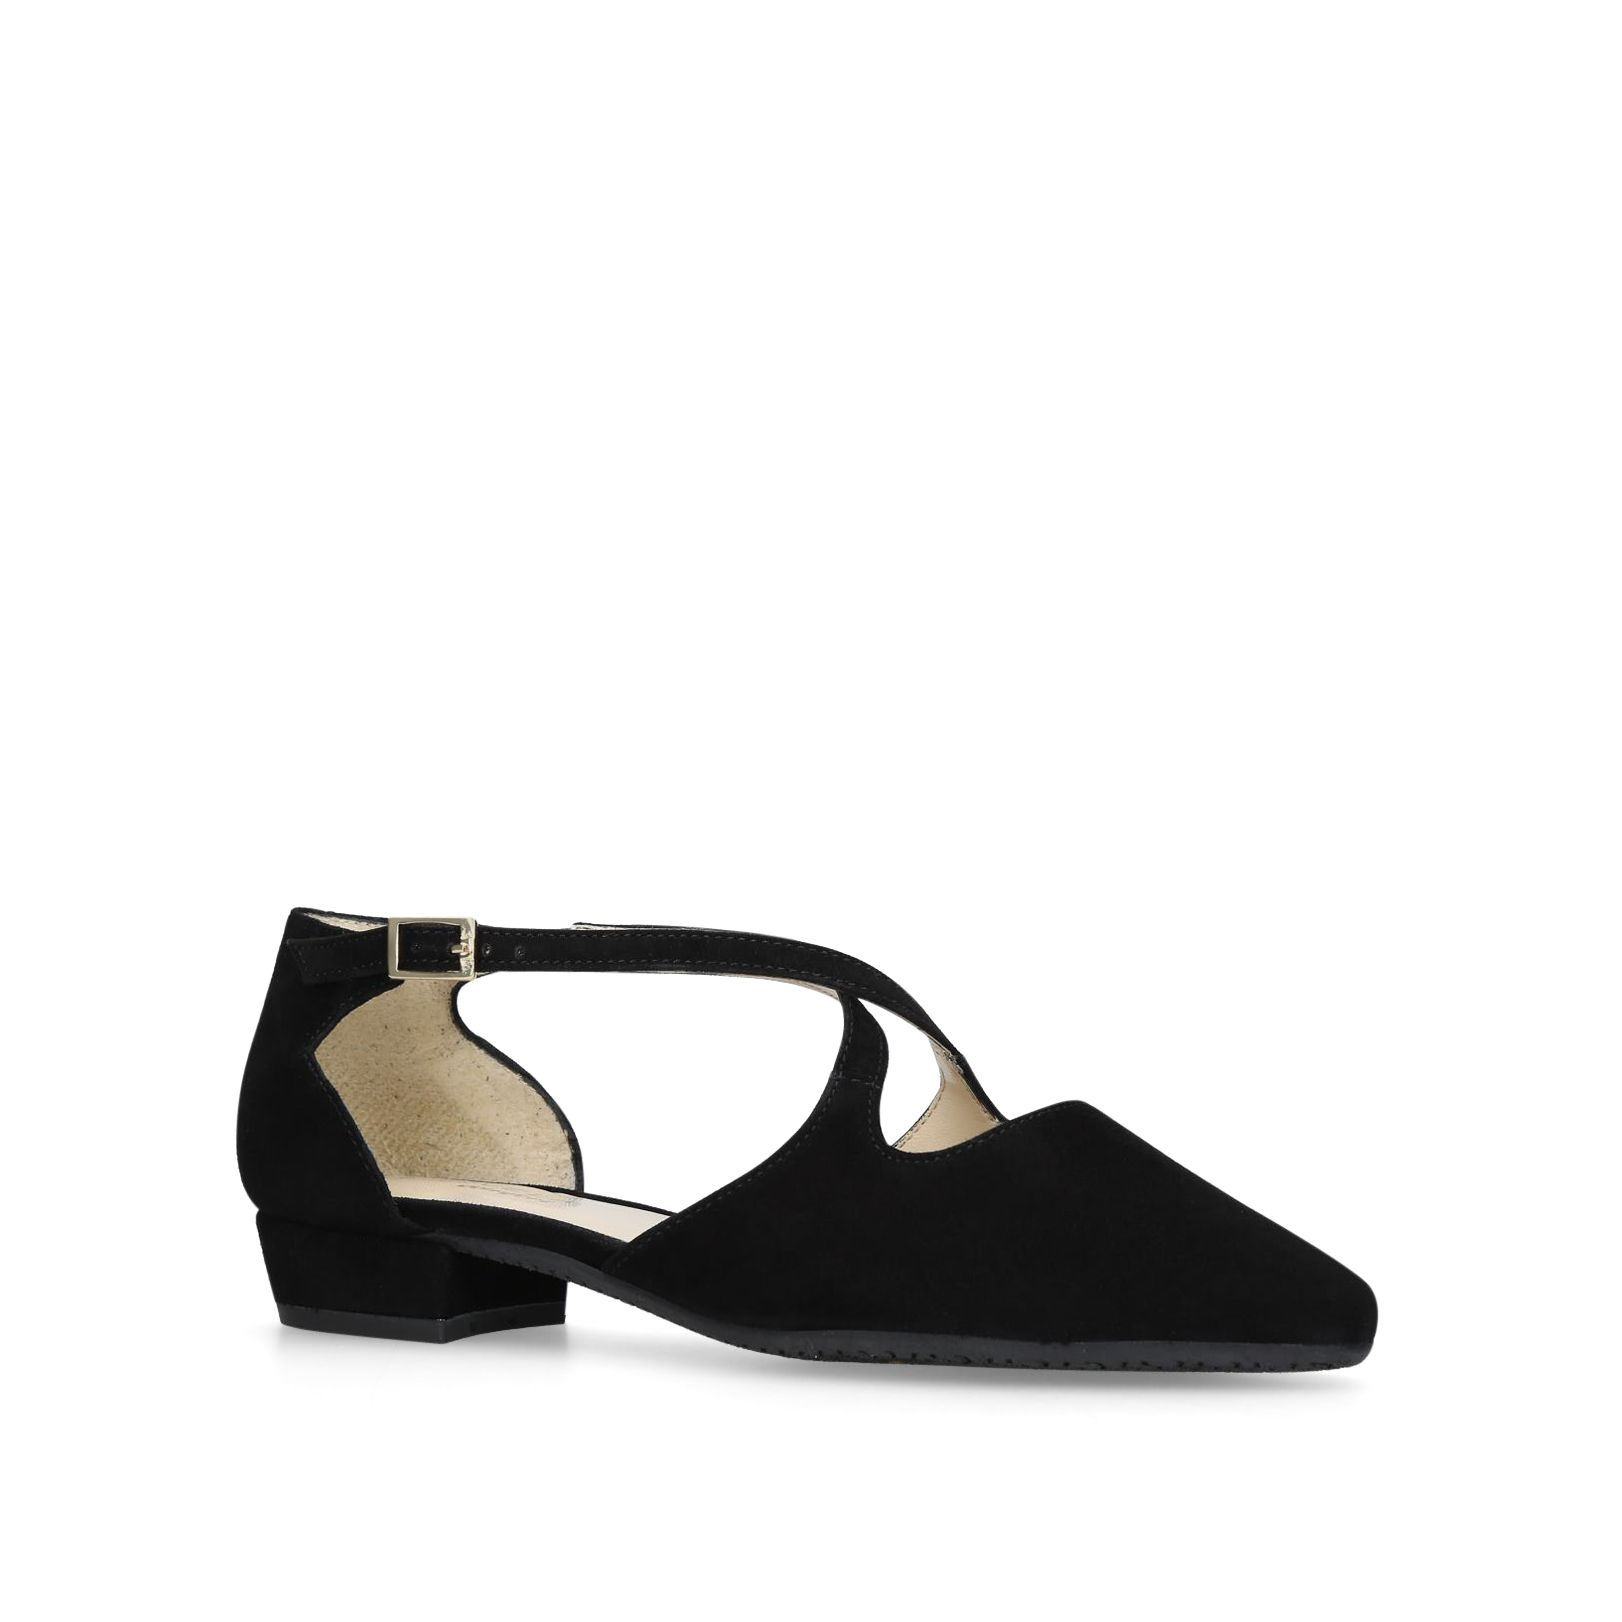 Carvela Comfort Amour Courts, Black